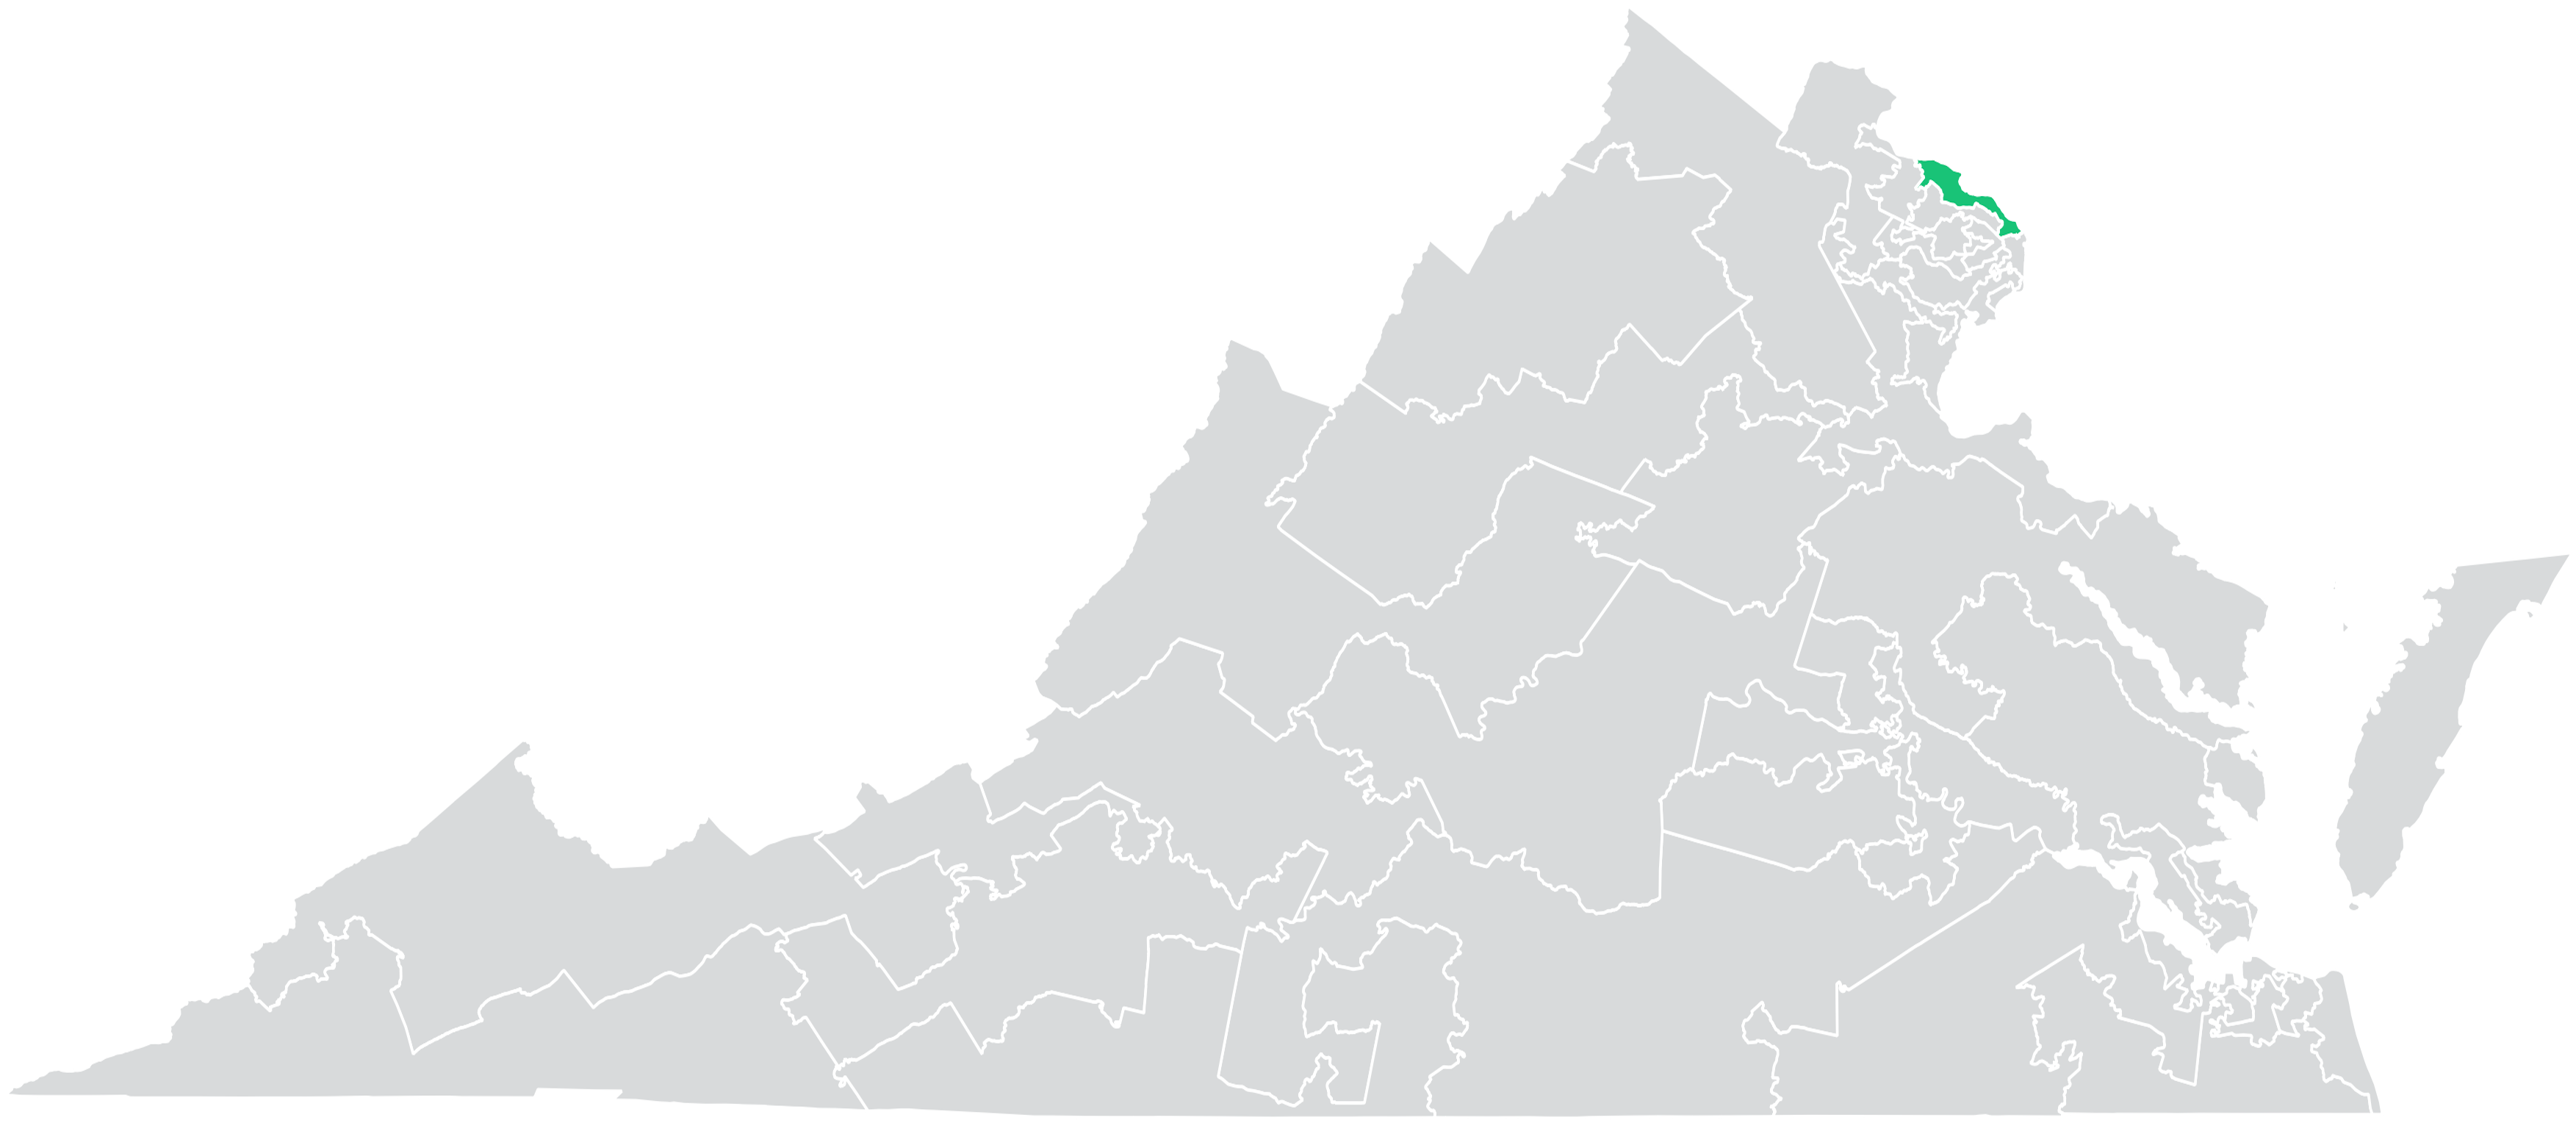 Virginia's 31st Senate district - Wikipedia on kentucky us house of representatives, kentucky congressional districts by party, kentucky state representatives districts, kentucky municipality map, kentucky redistricting map for 2013, kentucky trails map, kentucky state number of representatives, kentucky senate map, kentucky republican district maps, kentucky longitude map, kentucky state house districts, kentucky area development districts, kentucky school districts, ibew districts map, kentucky state house of representatives,